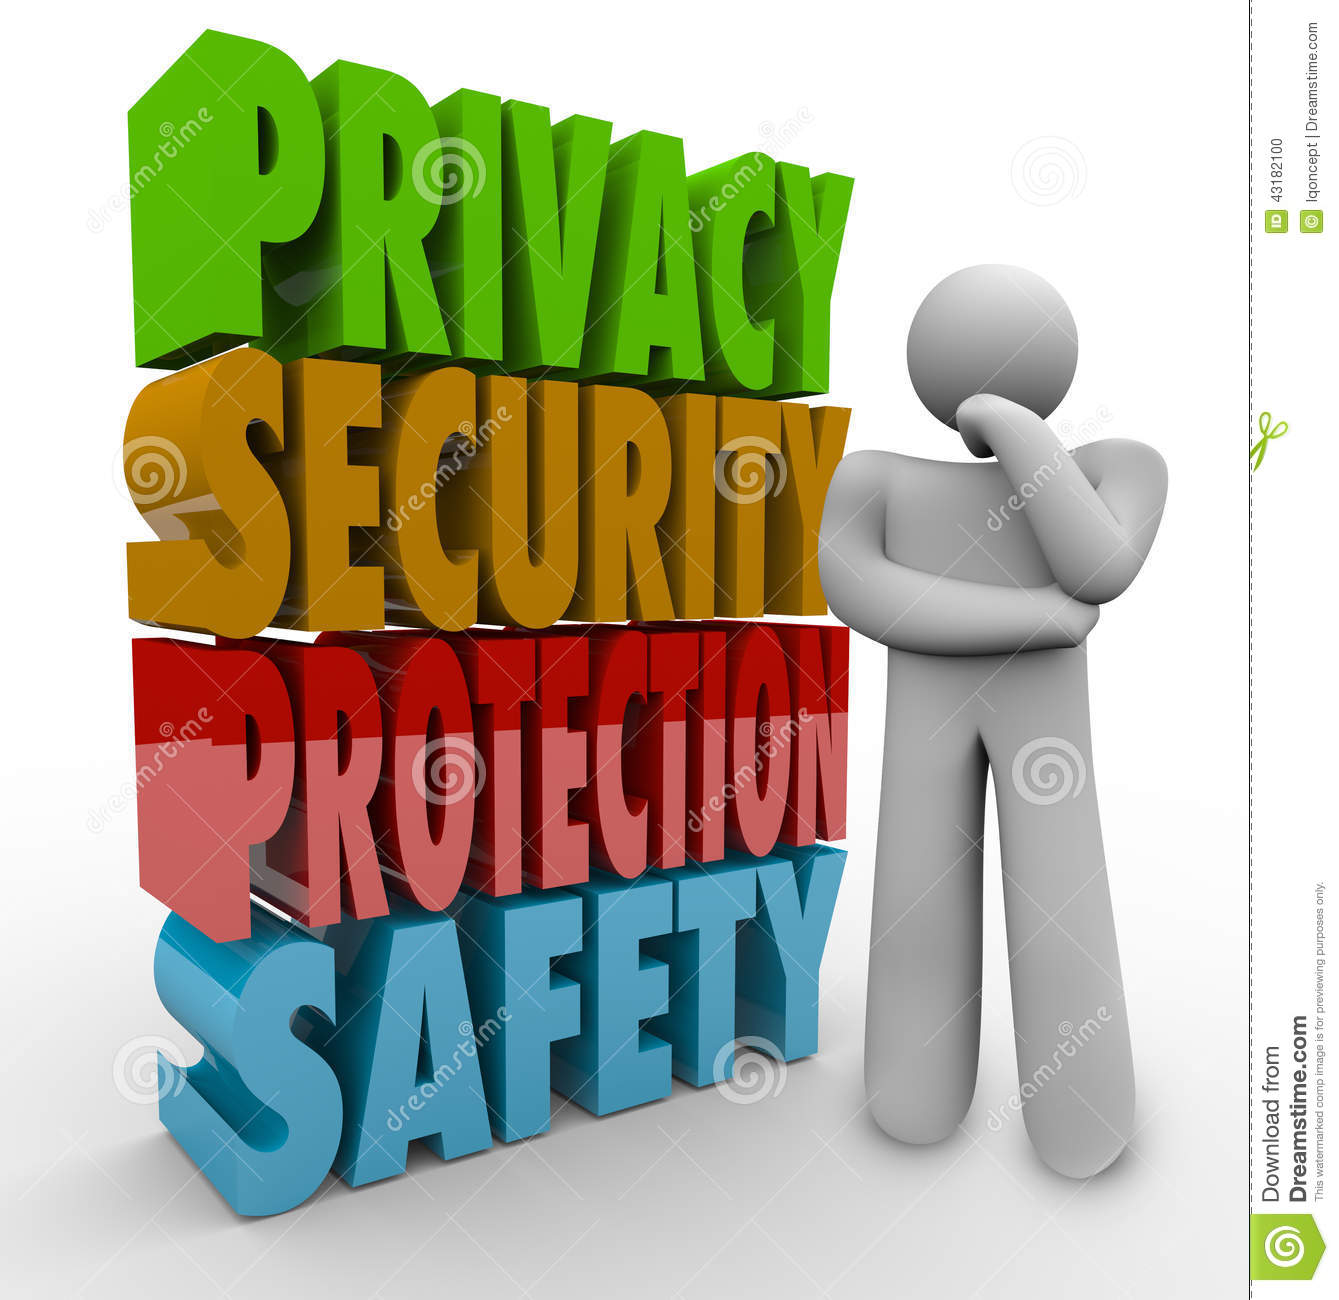 Privacy Security Protection Safety Thinker 3d Words Stock